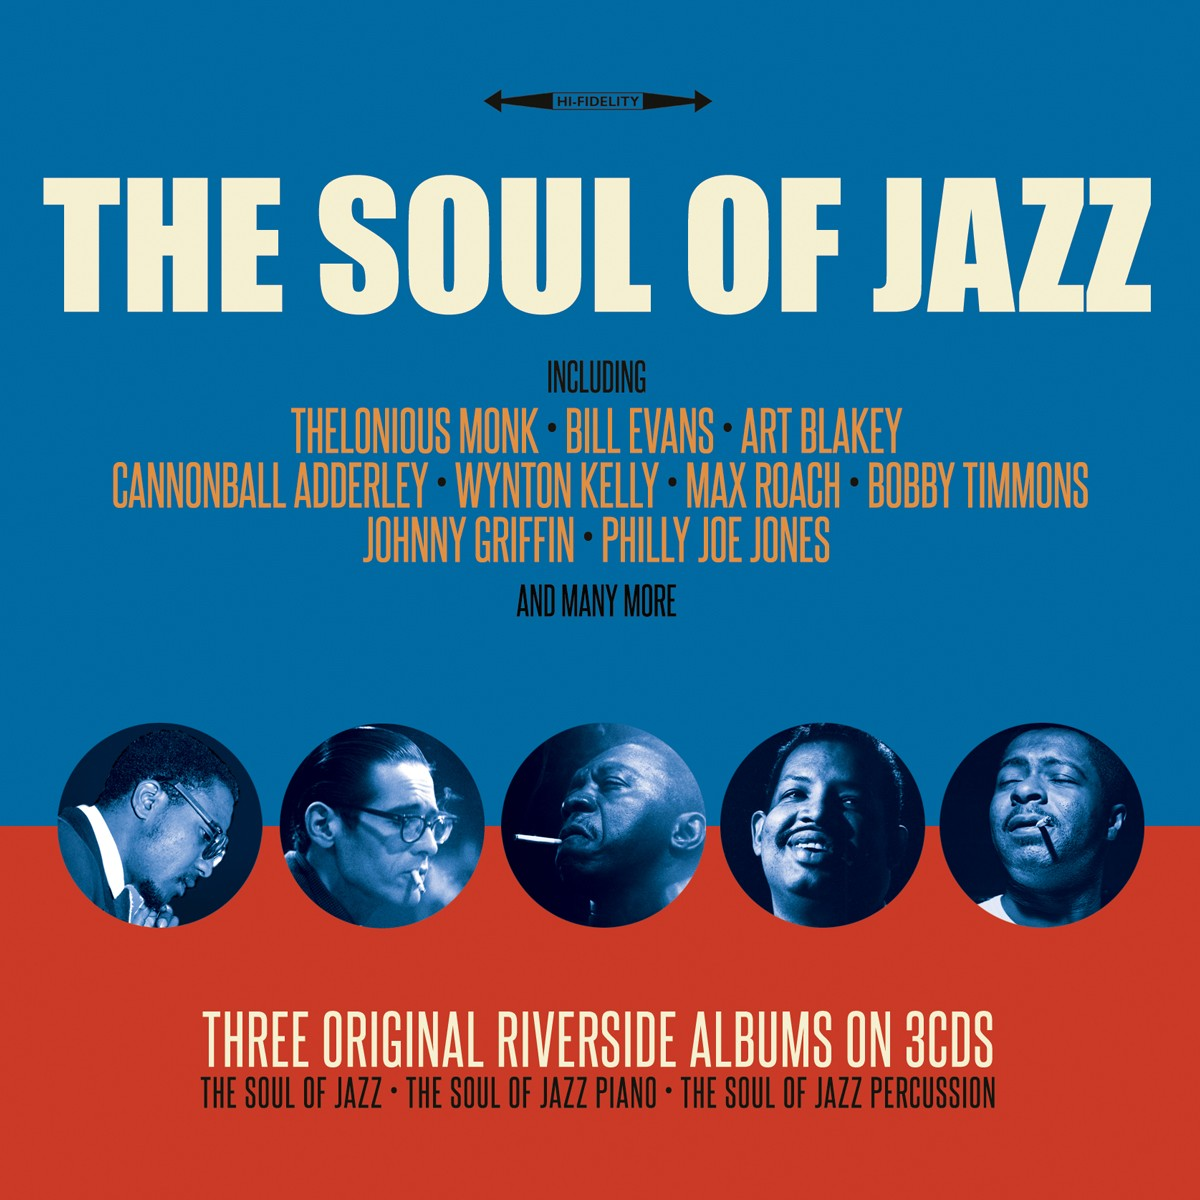 THE SOUL OF JAZZ (3 CDS)